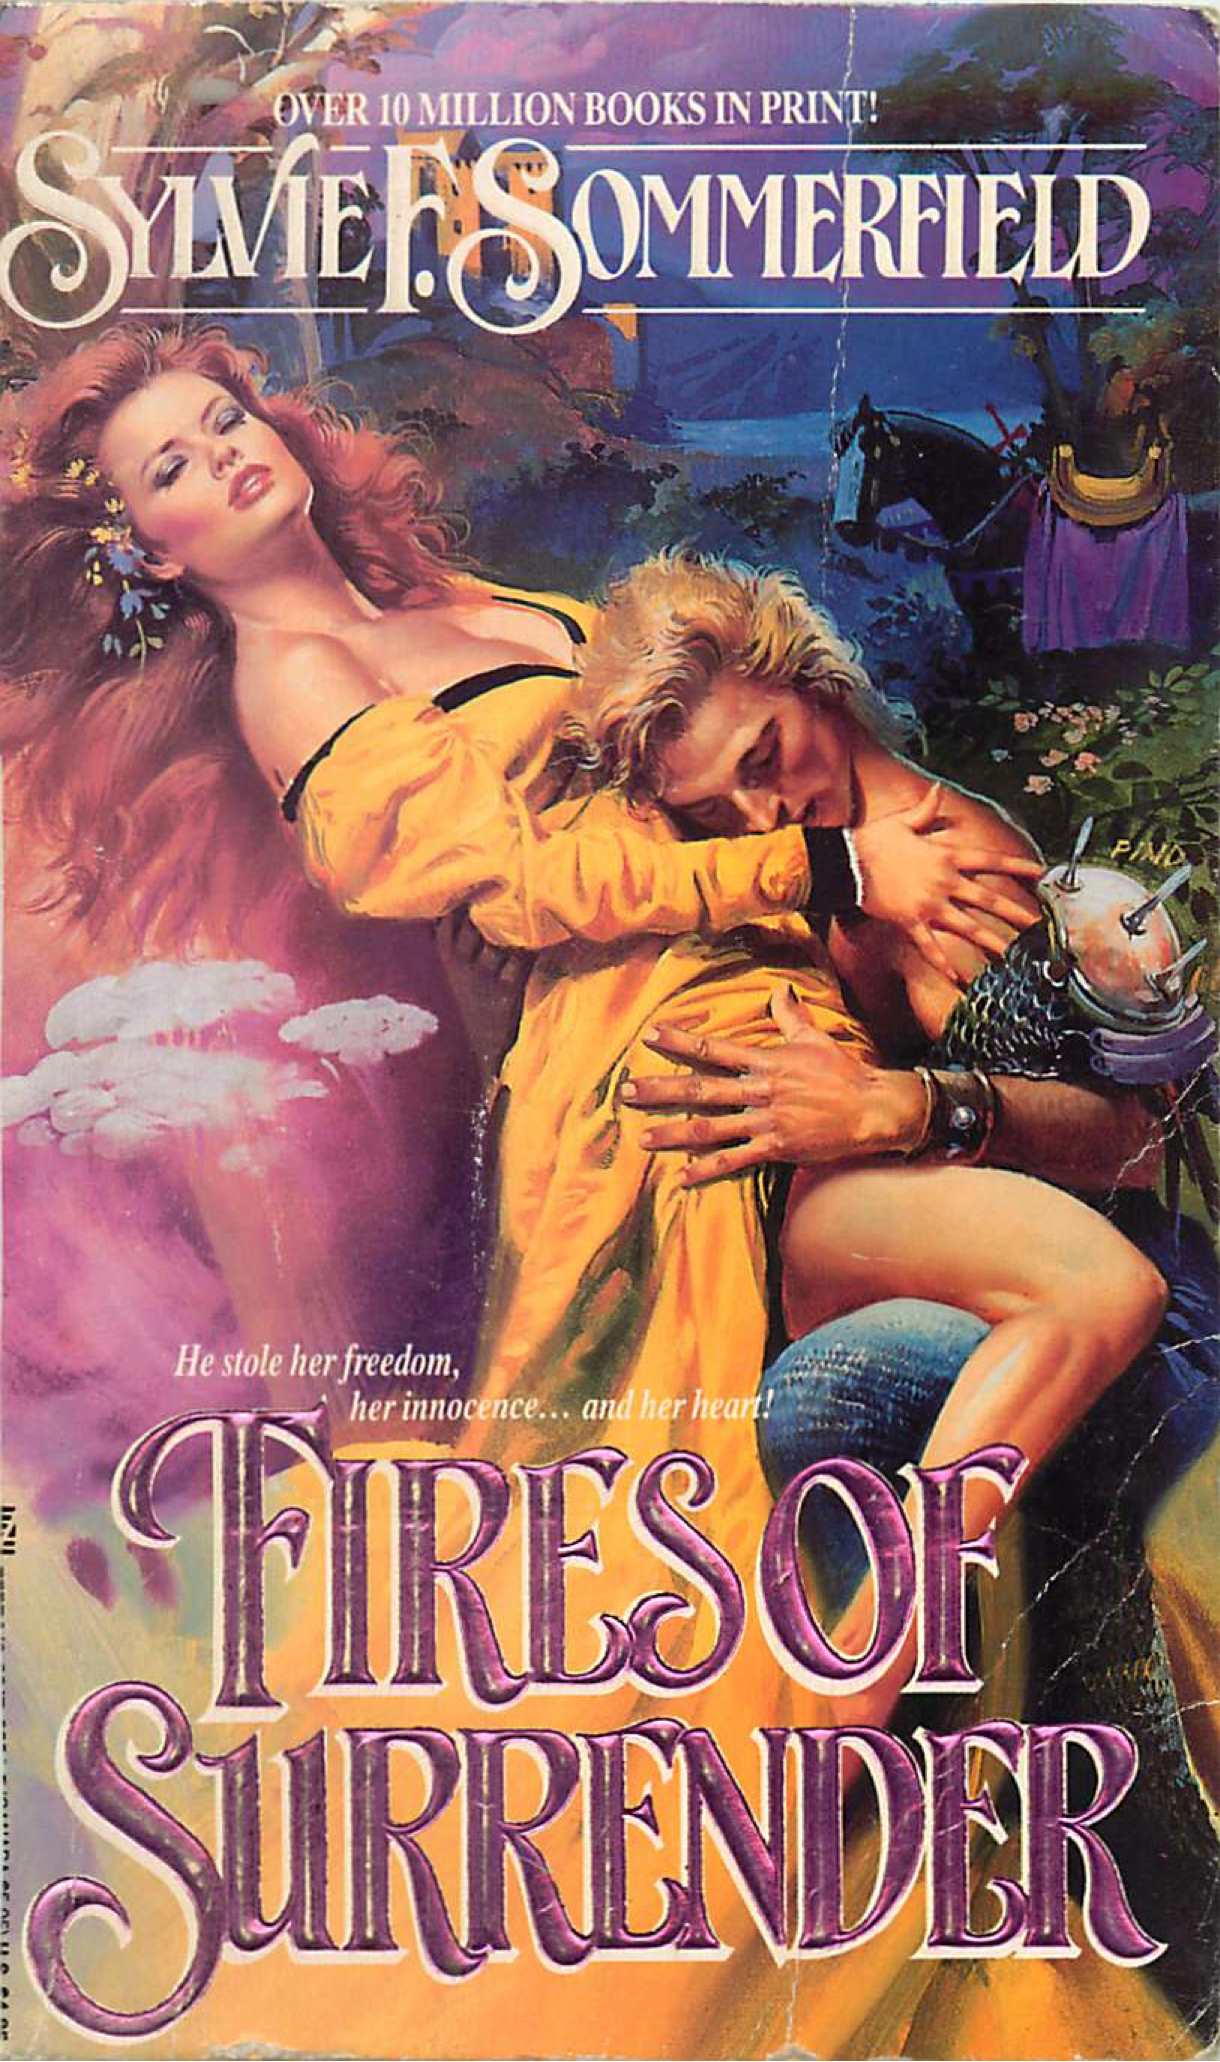 Fires of Surrender - not only is she floating on a fart cloud while he writhes in her lap but there's a horse in the background looking very confused